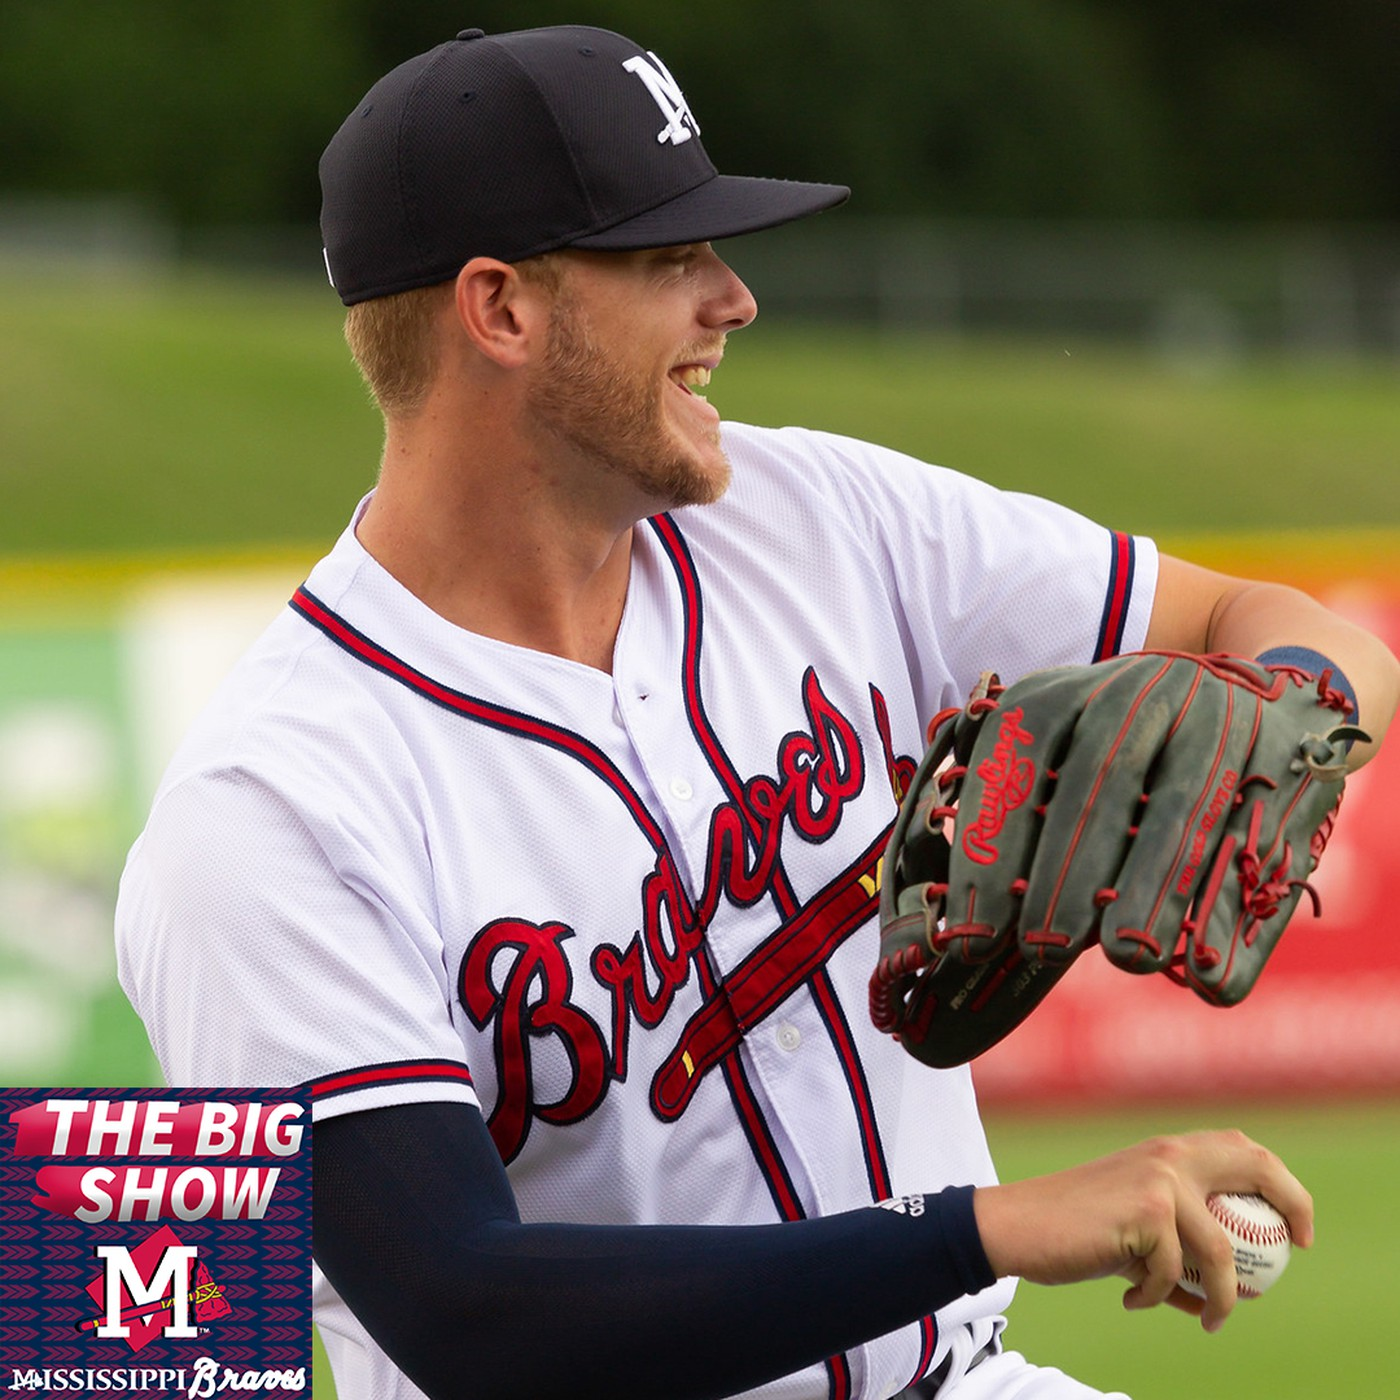 The Big Show - A Mississippi Braves Podcast